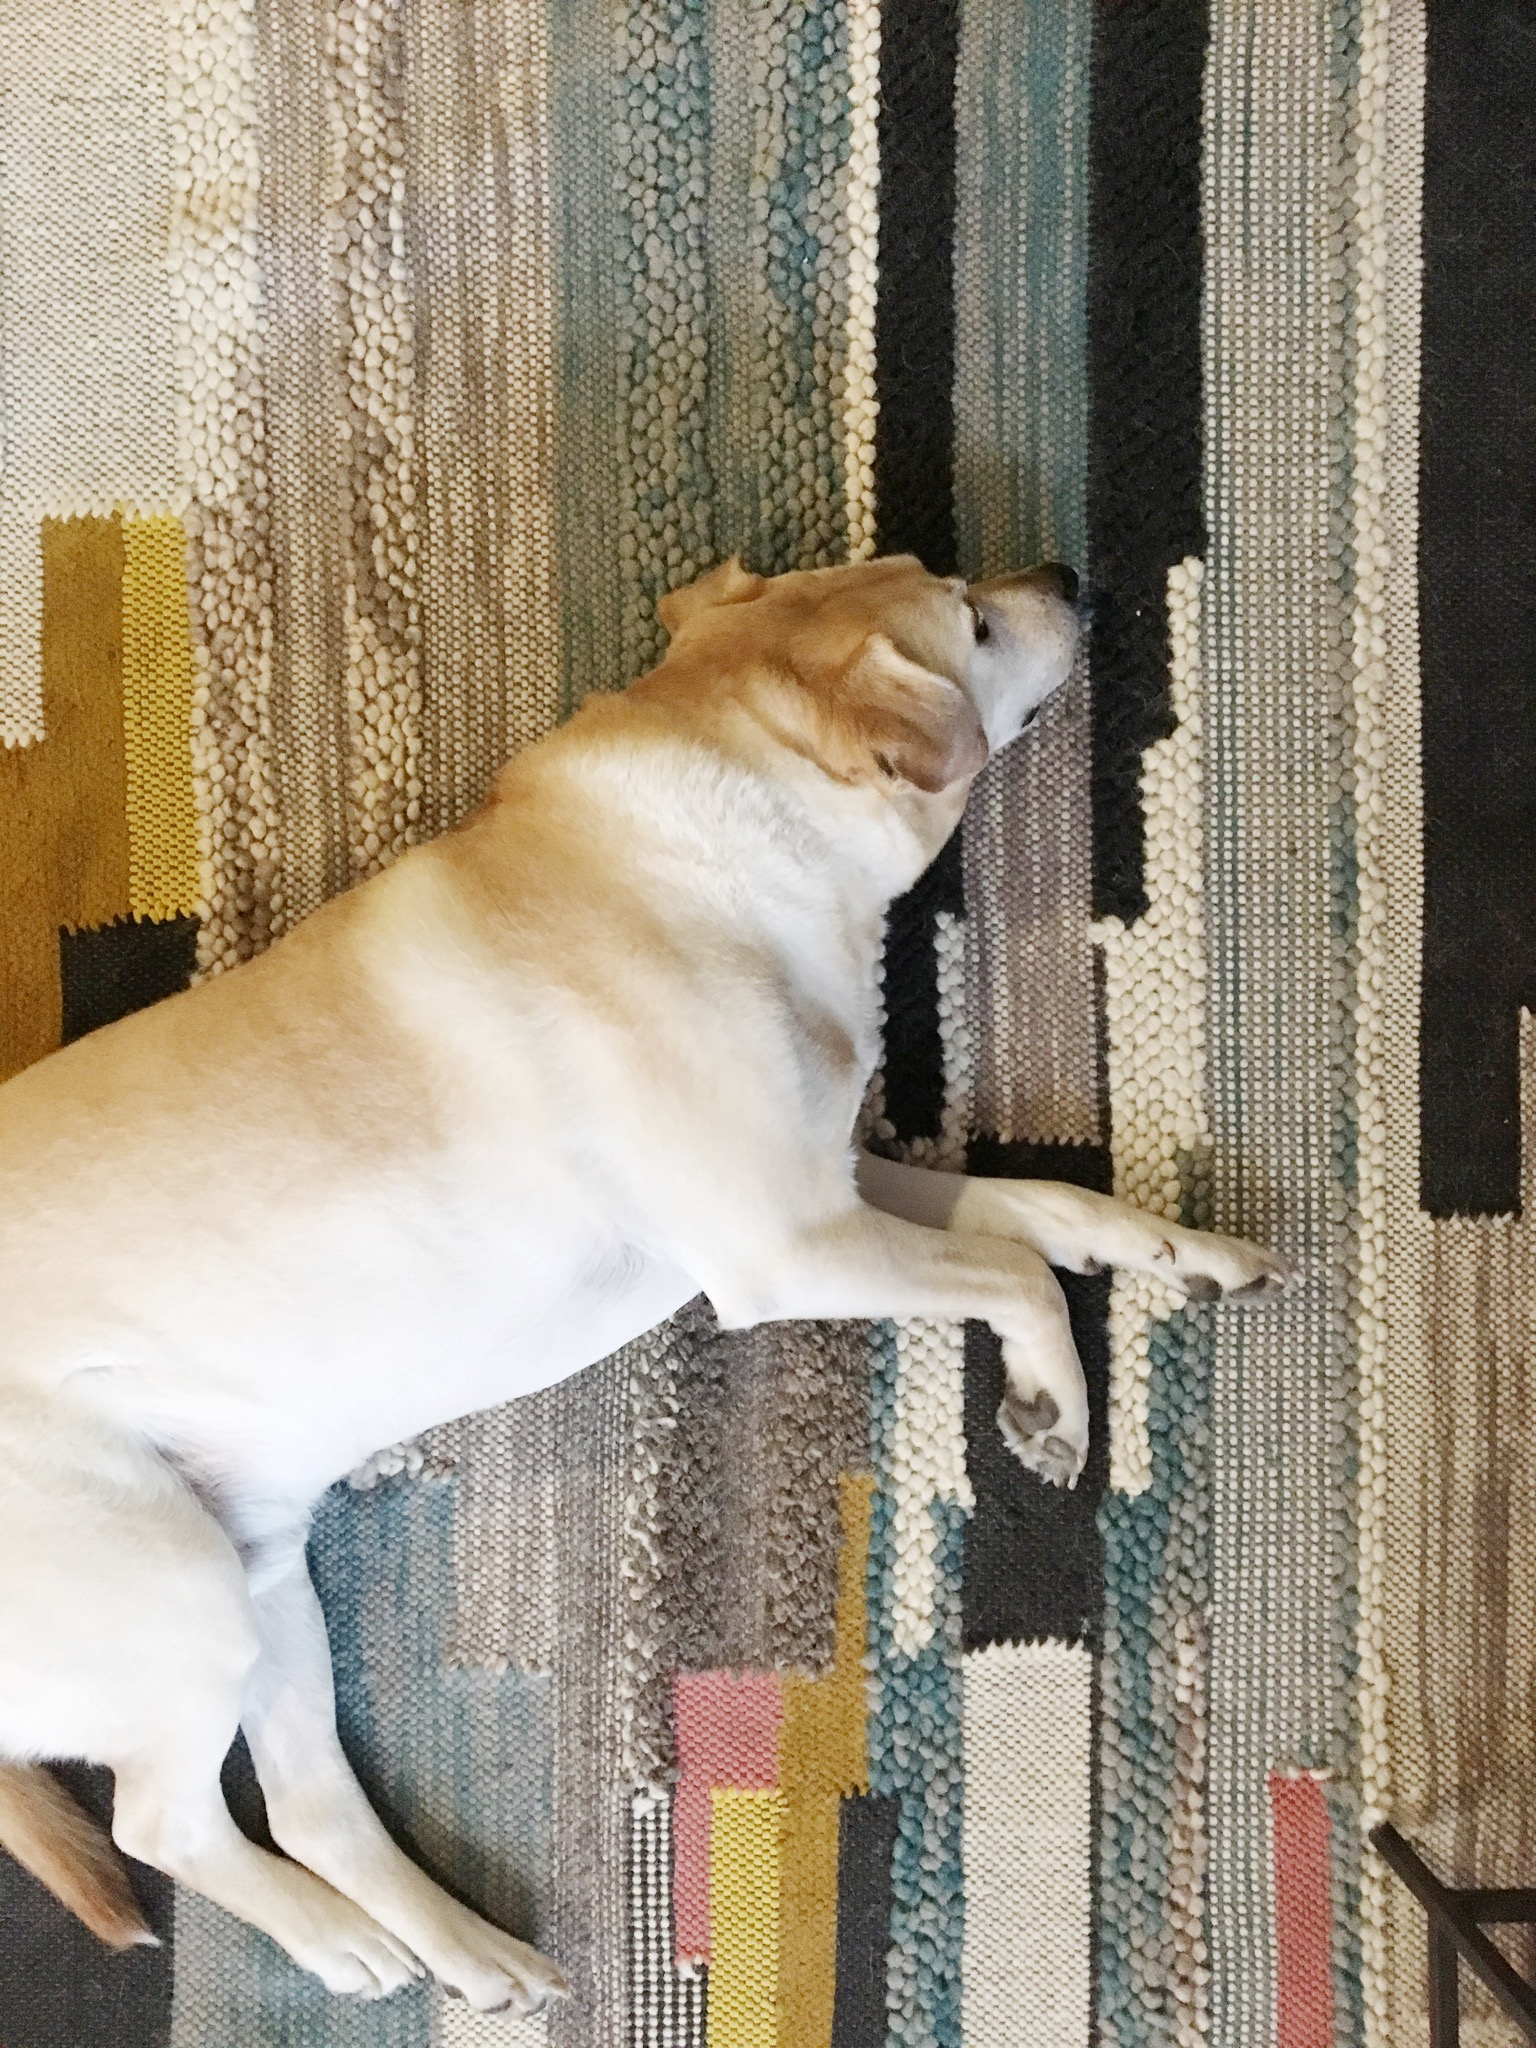 Steve, our client's dog, enjoyed our  home styling session  this week. He approved of all of our suggestions.